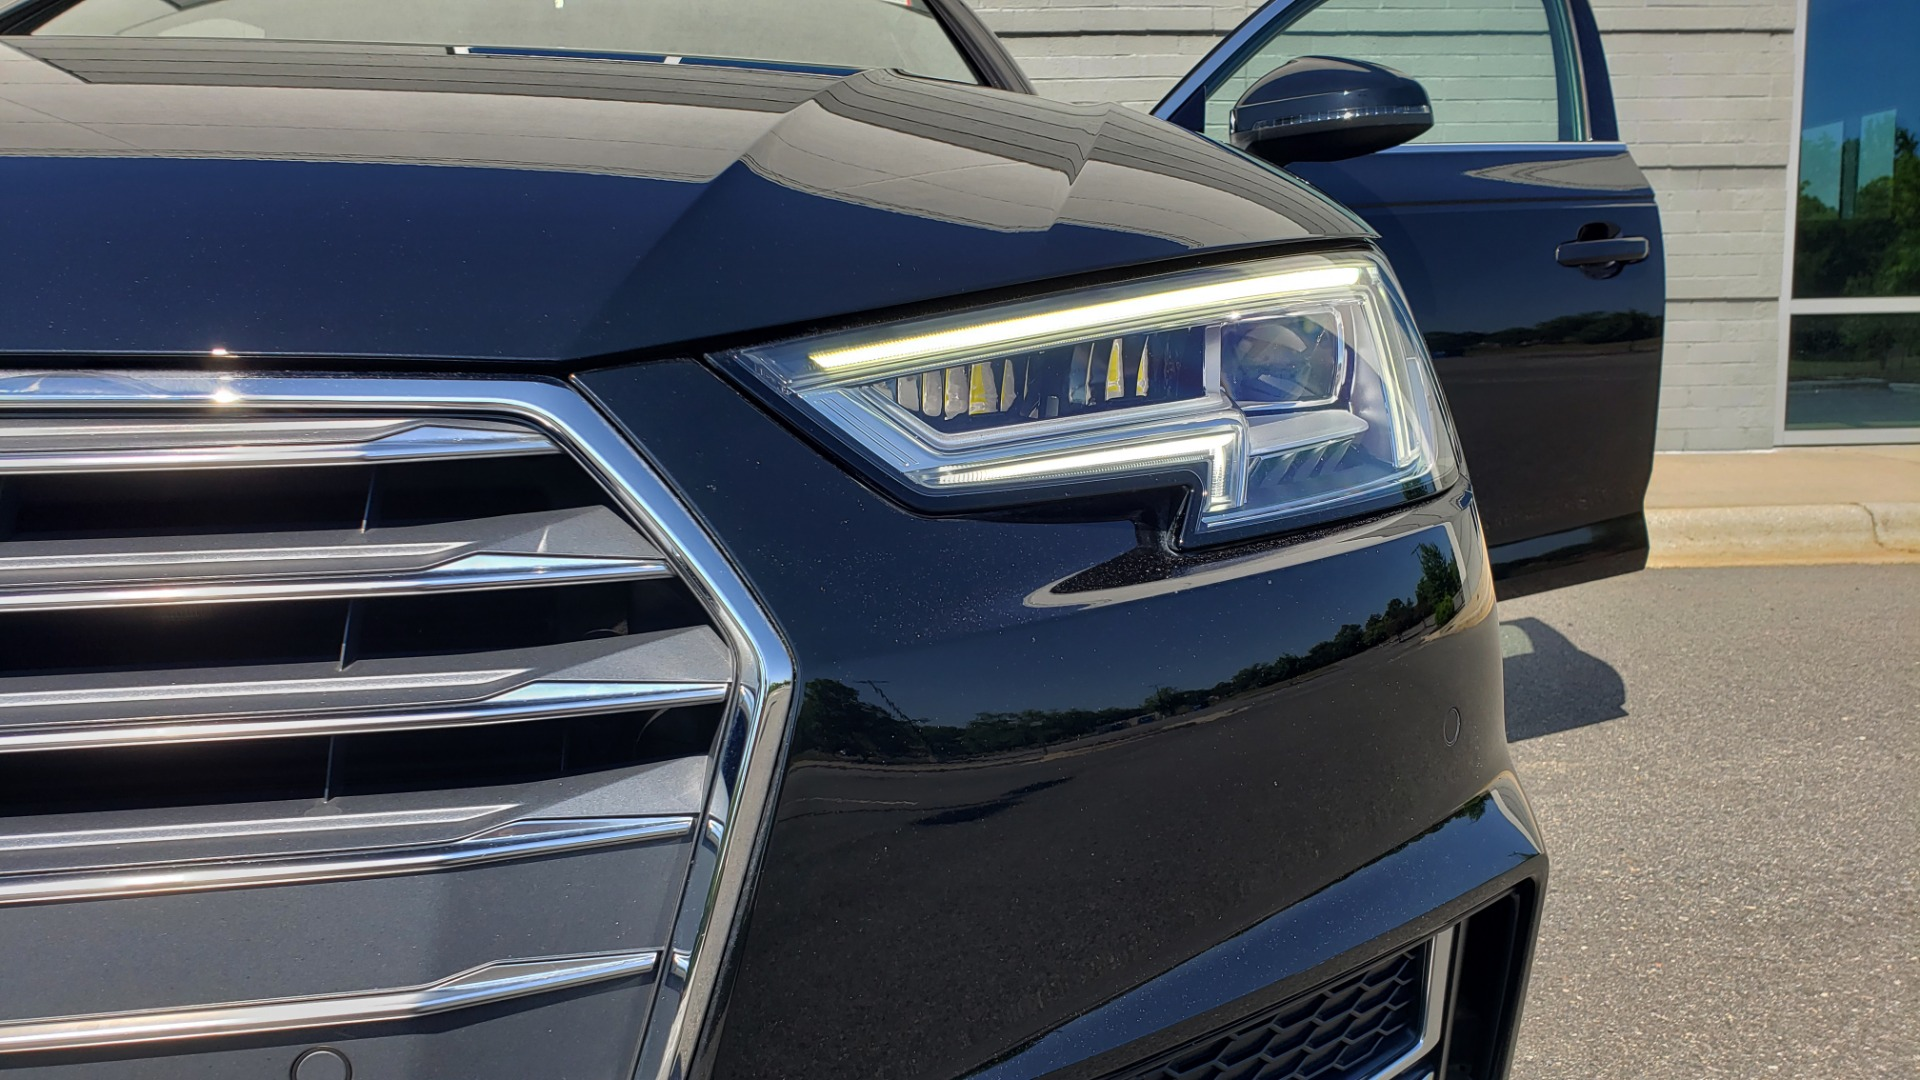 Used 2018 Audi A4 PREMIUM PLUS 2.0T / NAV / SUNROOF / B&O SND / CLD WTHR / REARVIEW for sale $30,695 at Formula Imports in Charlotte NC 28227 22